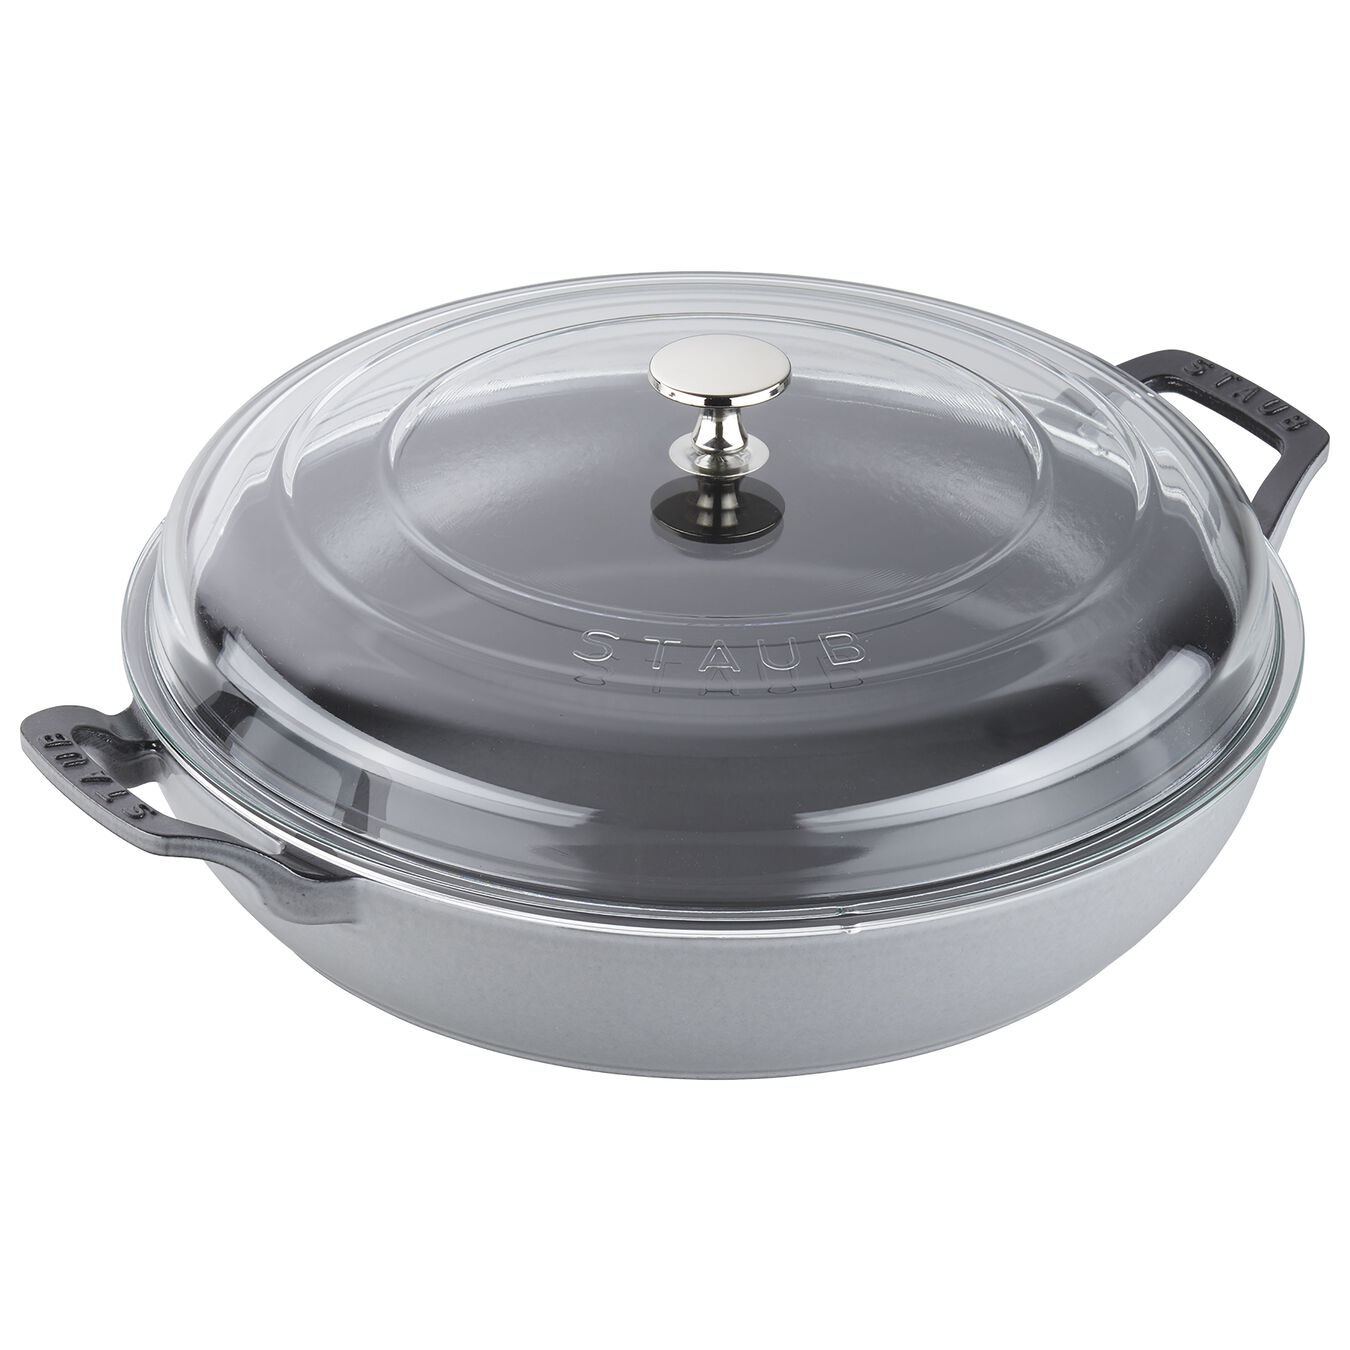 3.5-qt Braiser with Glass Lid - Graphite Grey,,large 1